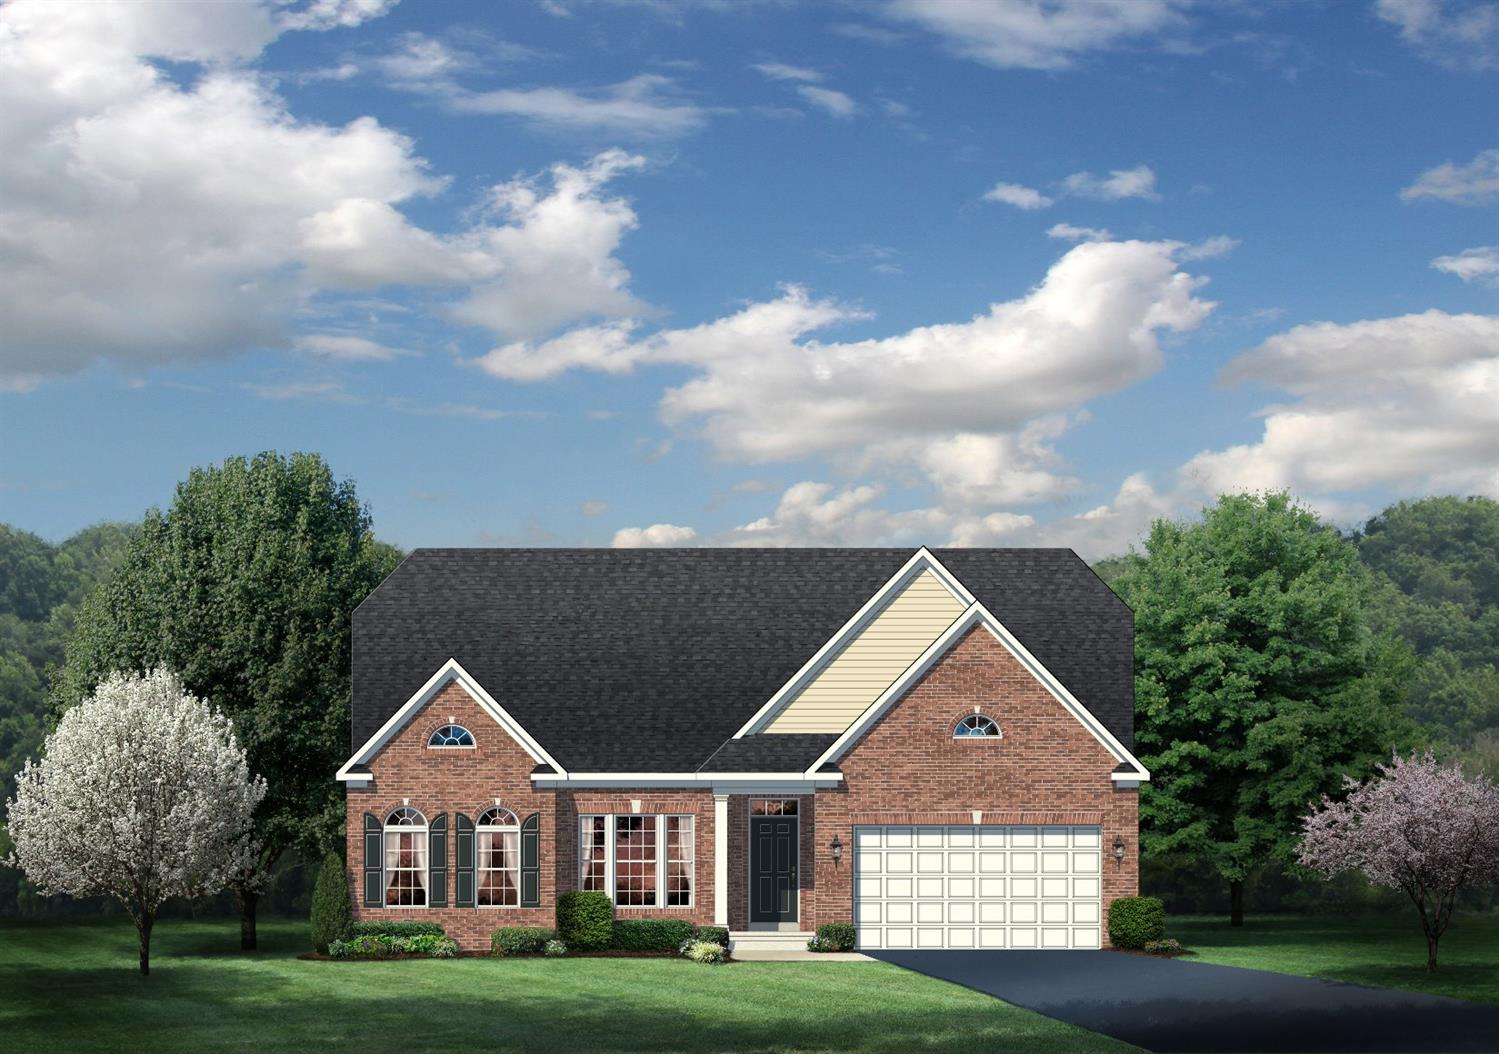 7369 Vista View Cir Crosby Twp., OH